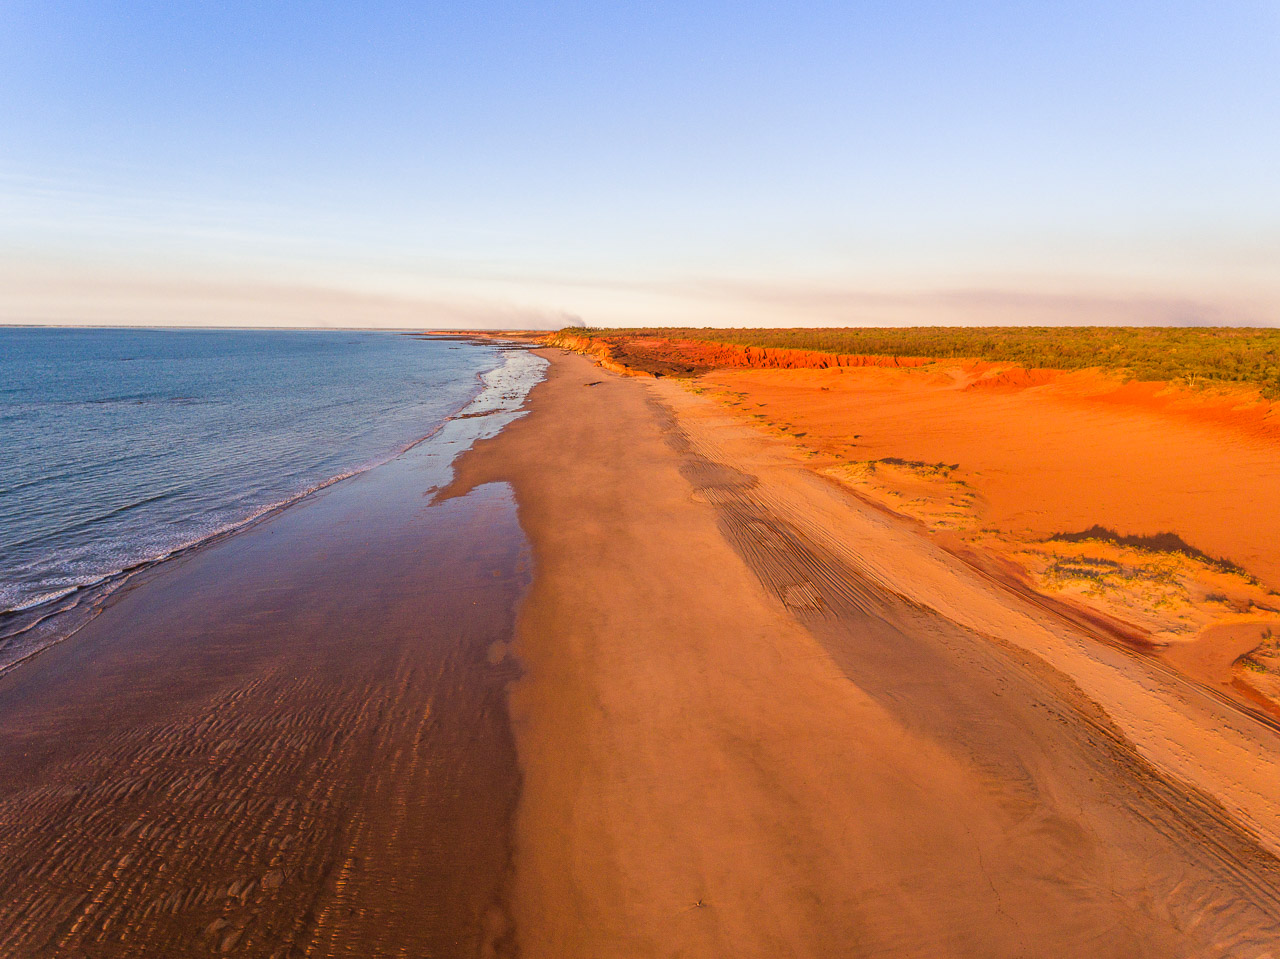 Drone image of the coast on the Dampier Peninsula